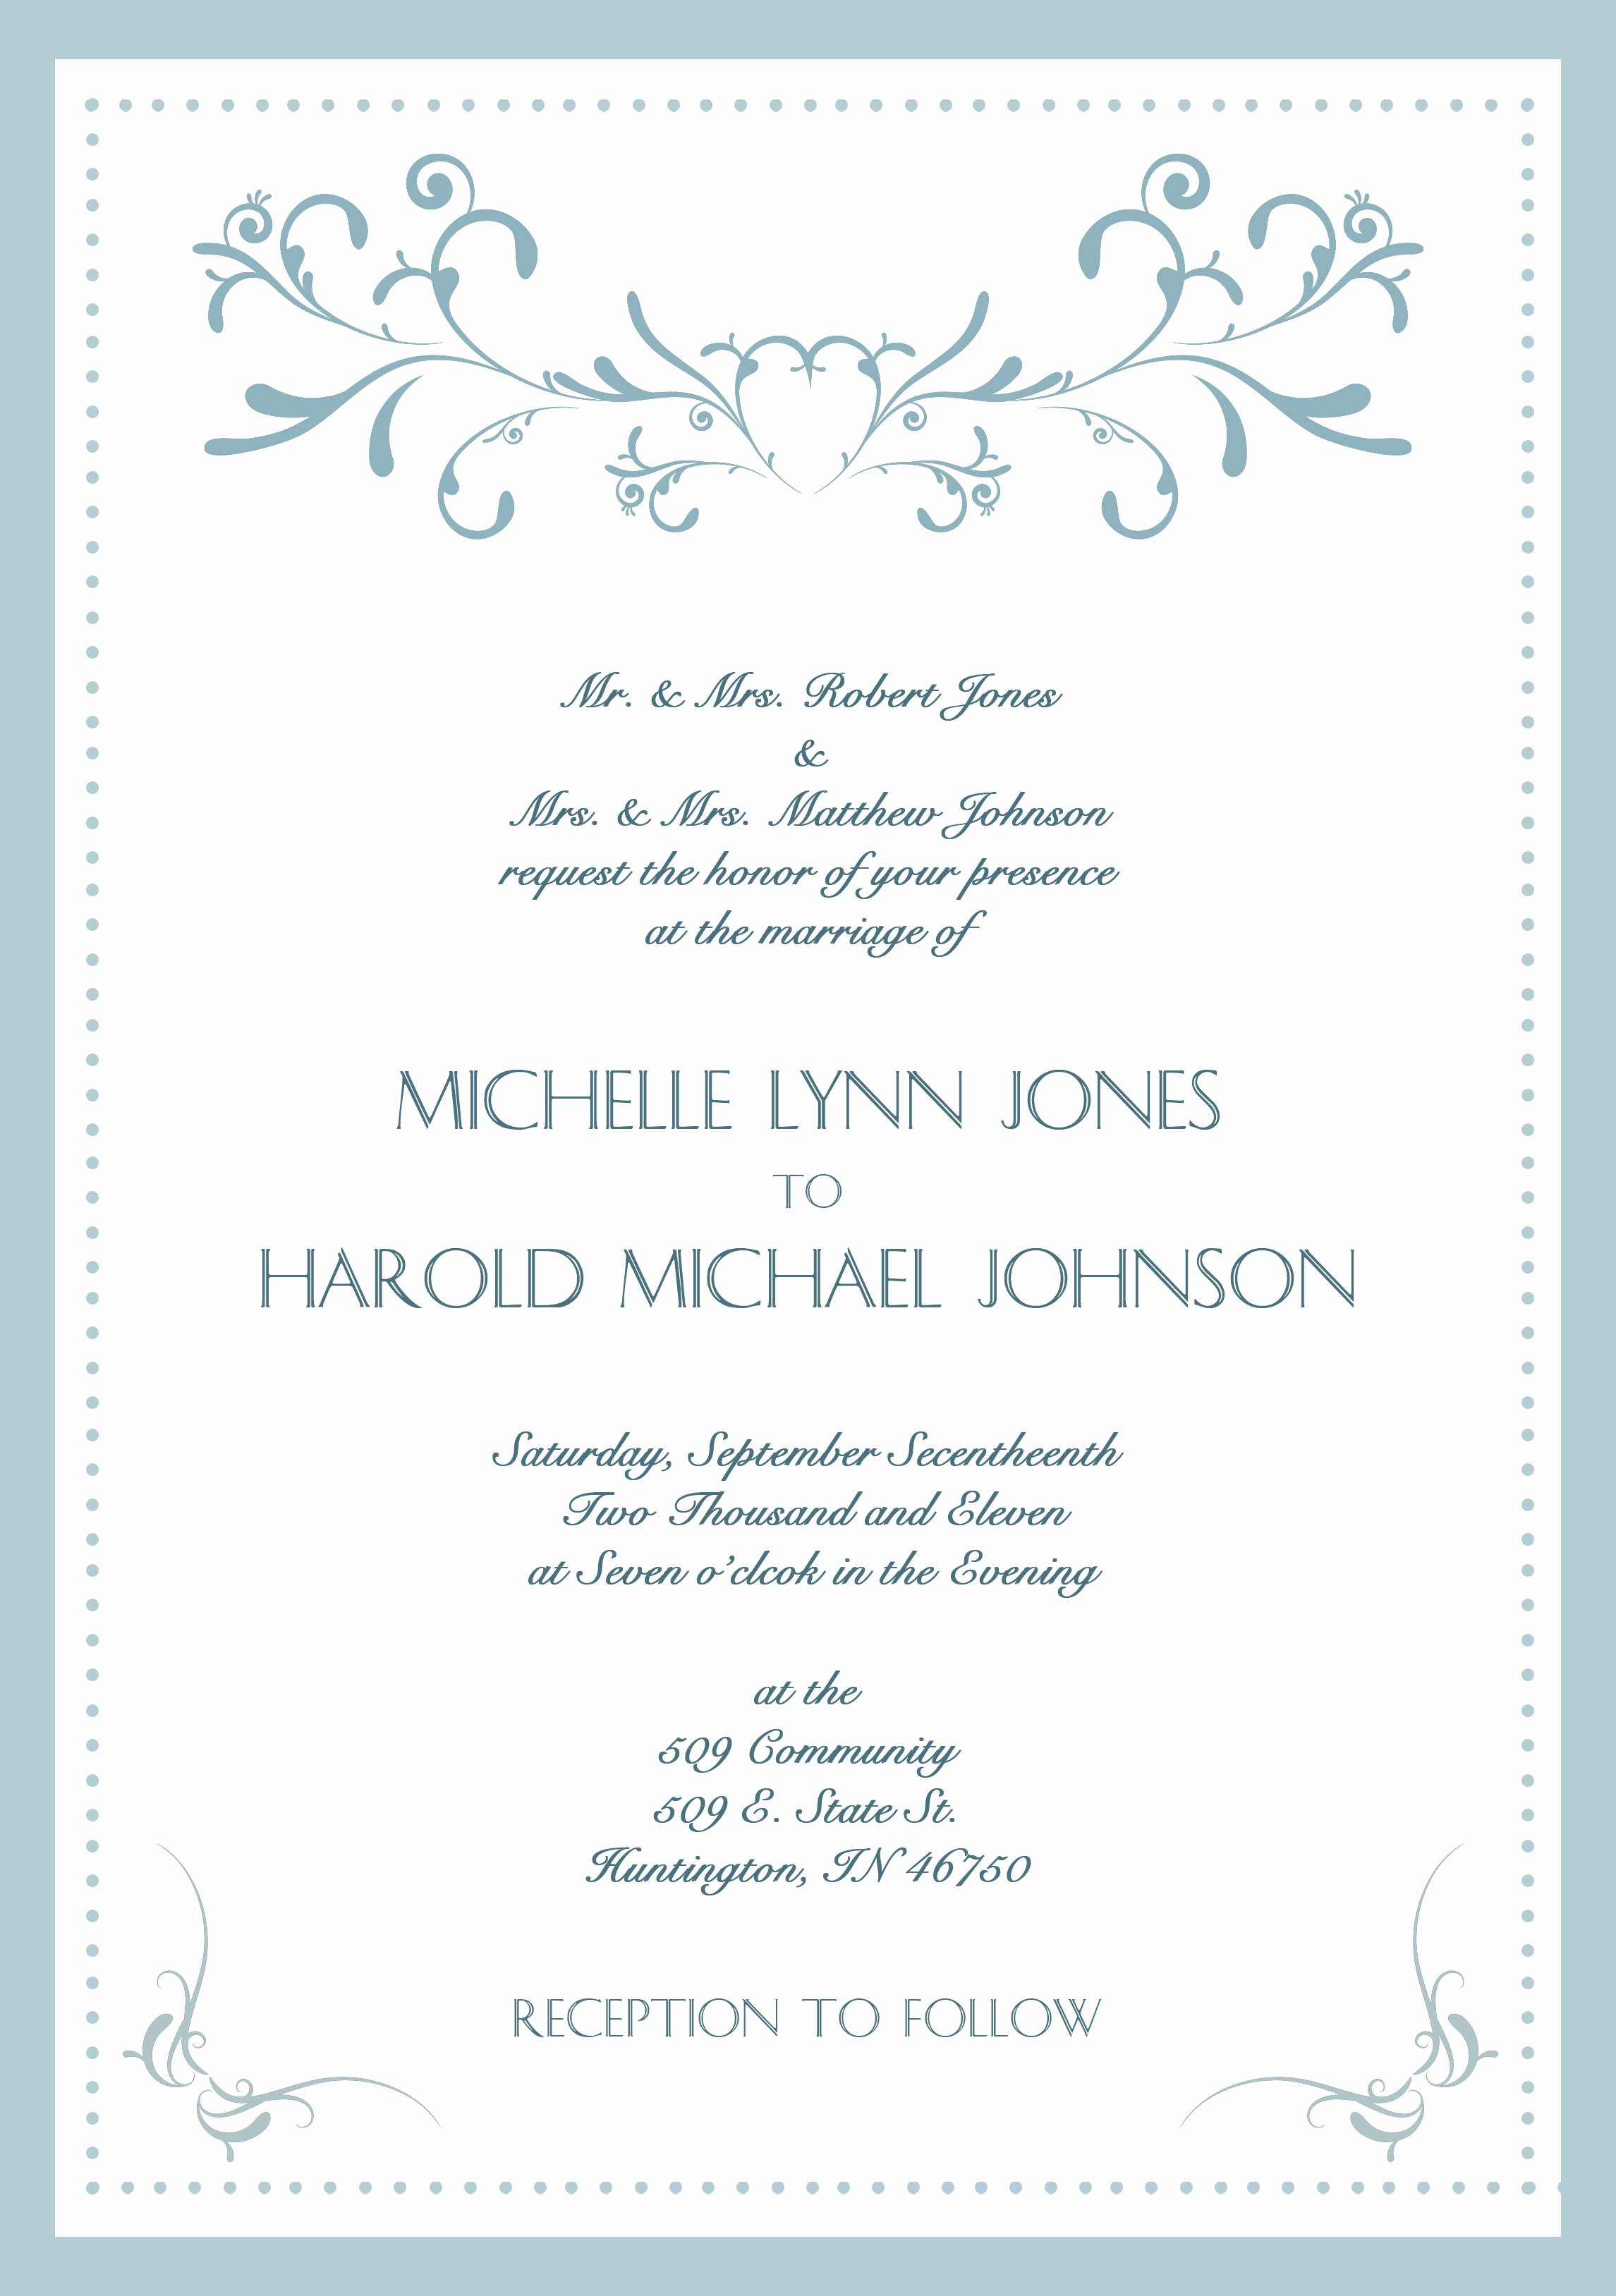 Formal Wedding Invitation Wording formal Wedding